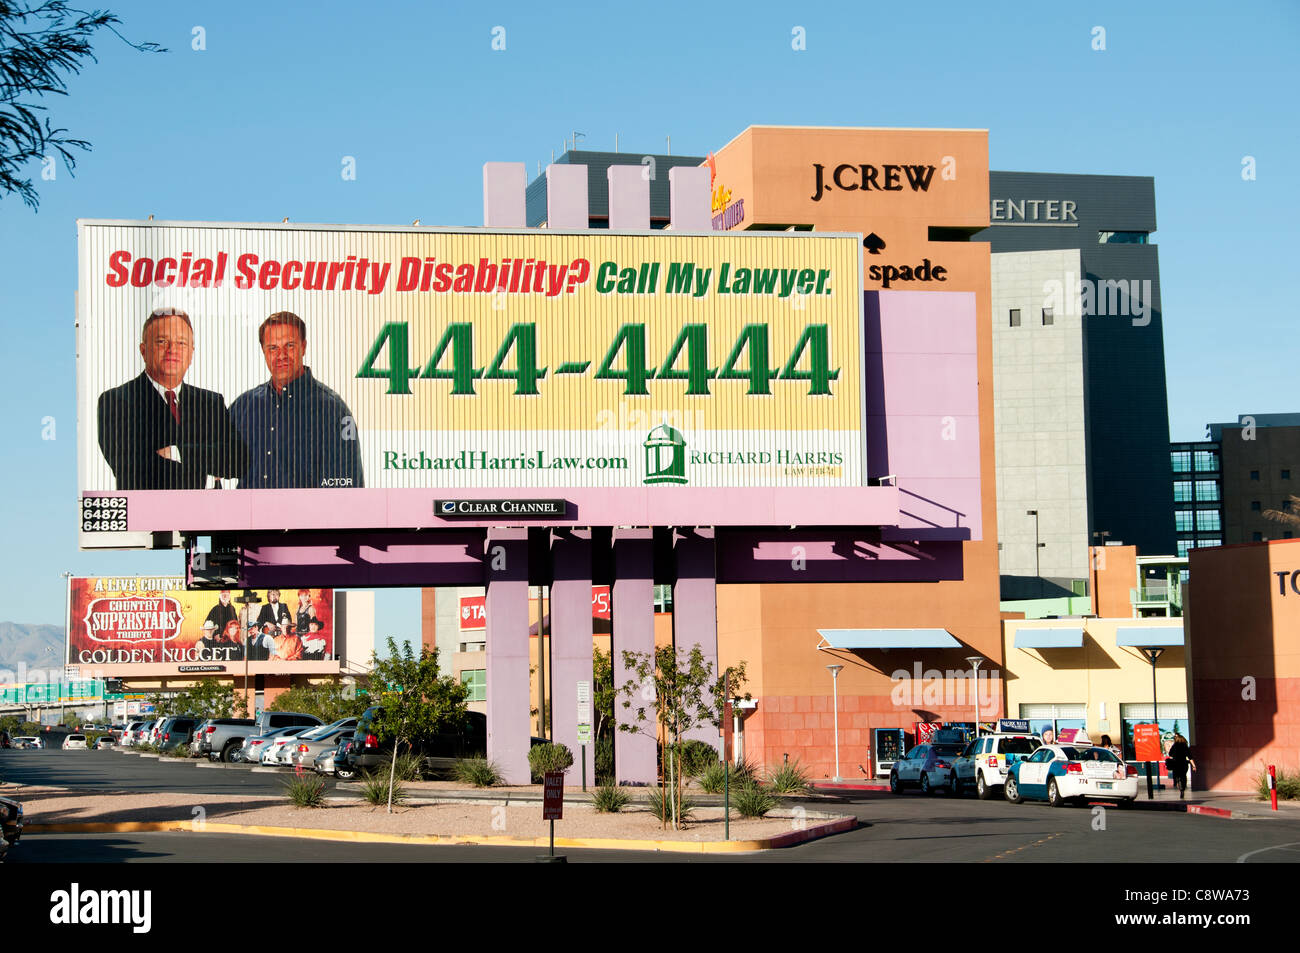 Social Security Disability Lawyer Las Vegas Premium Outlets United States - Stock Image